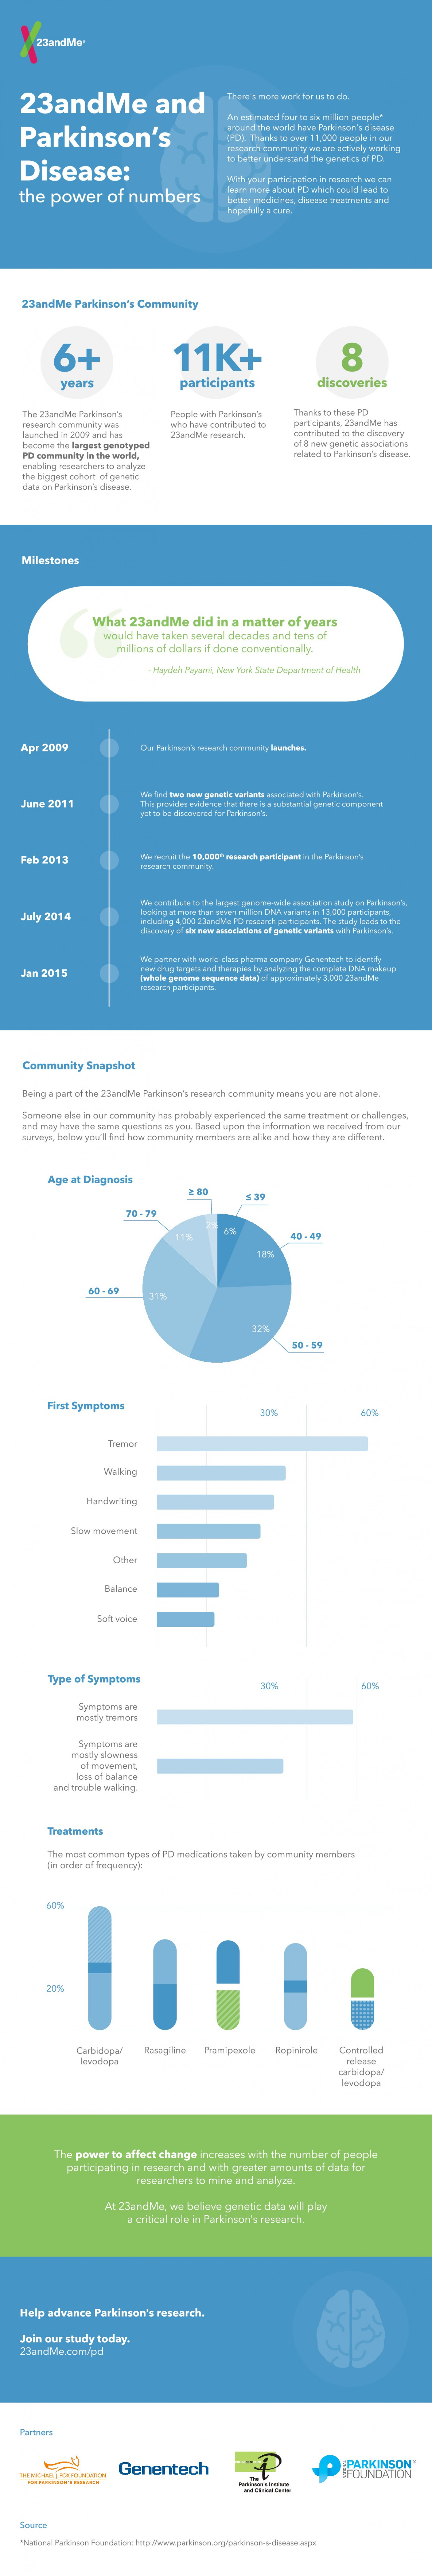 23andMe and Parkinson's Disease Infographic